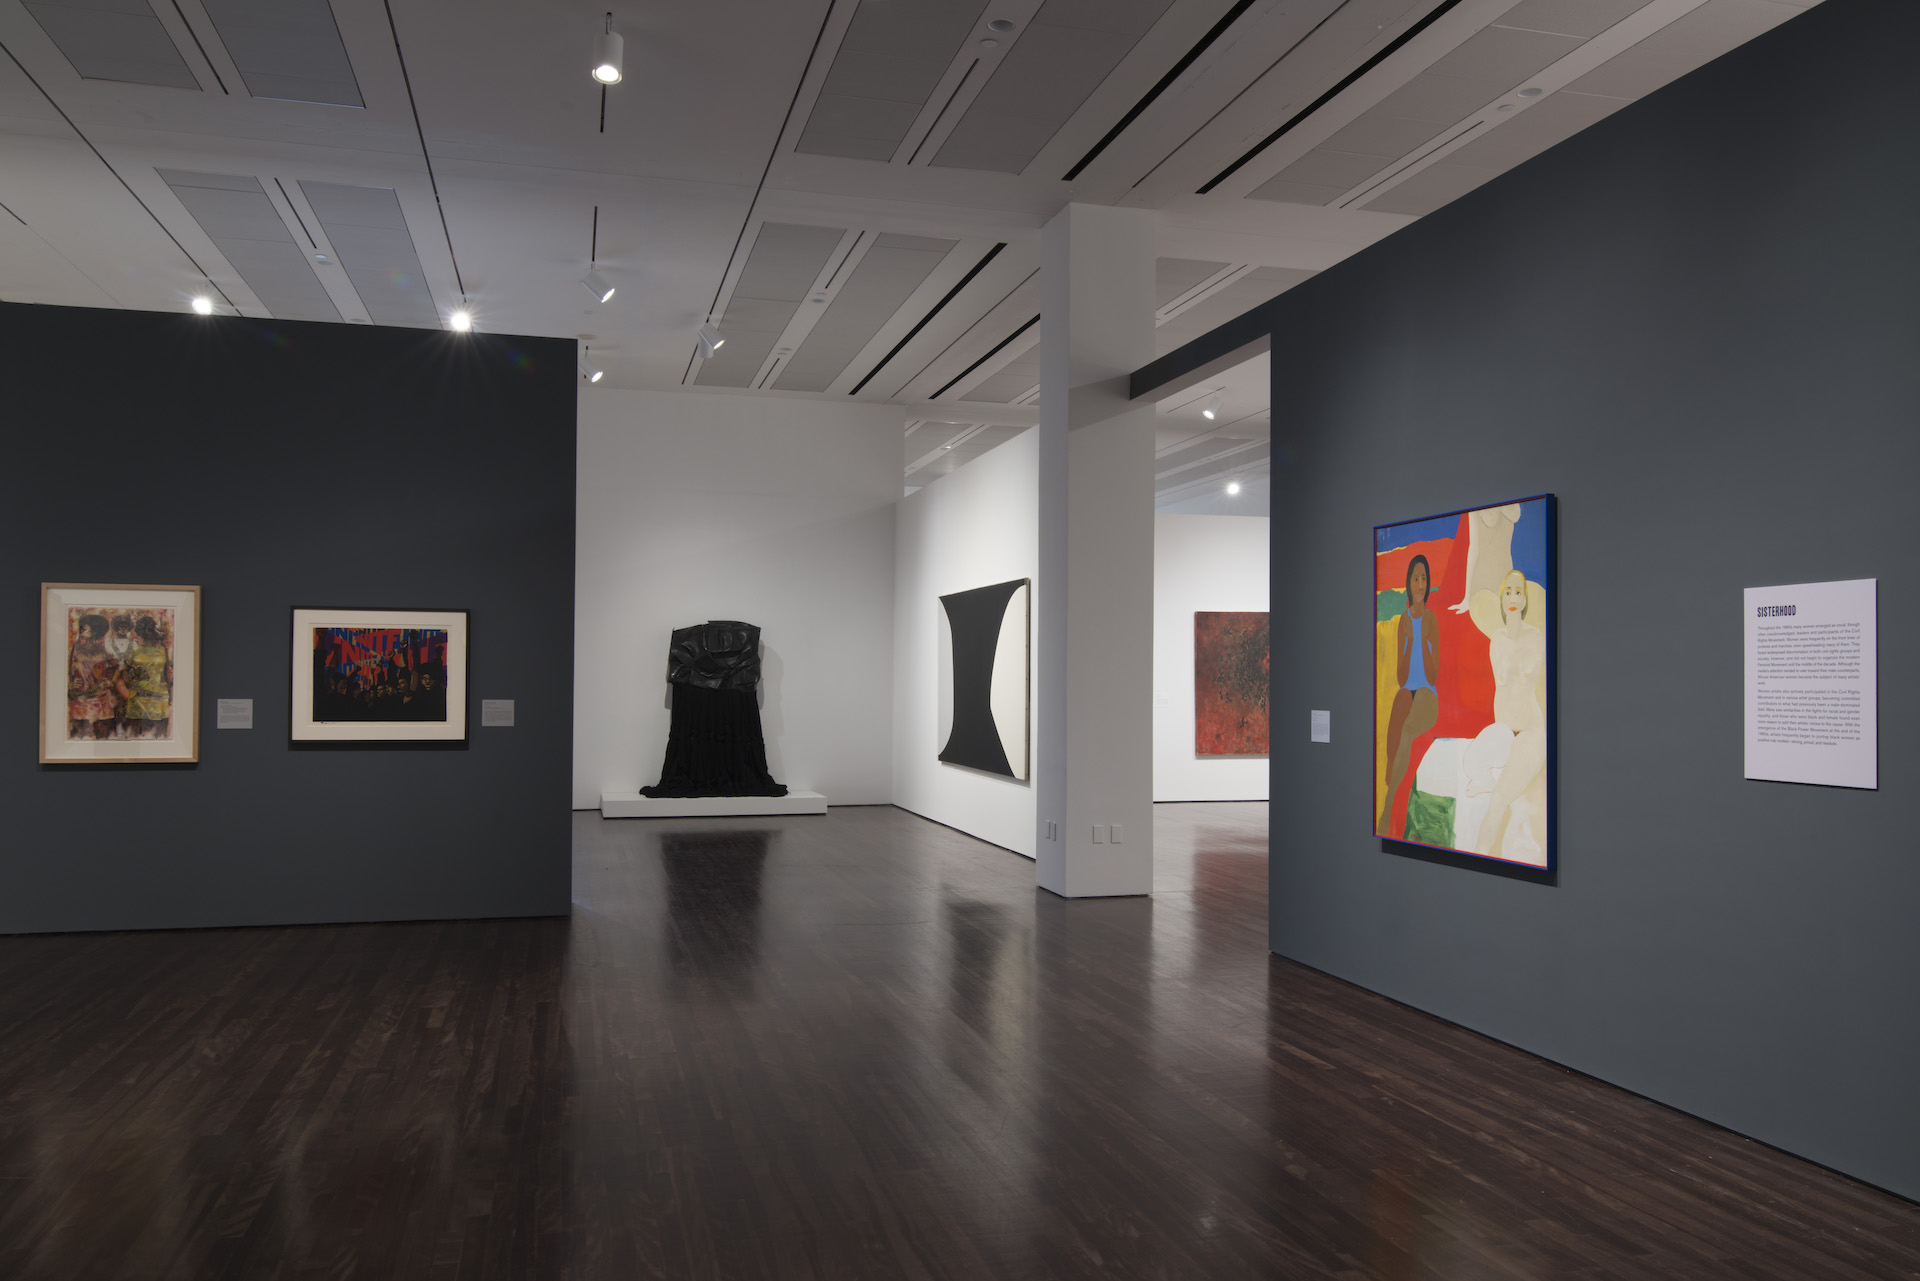 """Installation view of """"Witness: Art and Civil Rights in the Sixties"""" at theBlanton, several artworks are hung on the gallery walls"""